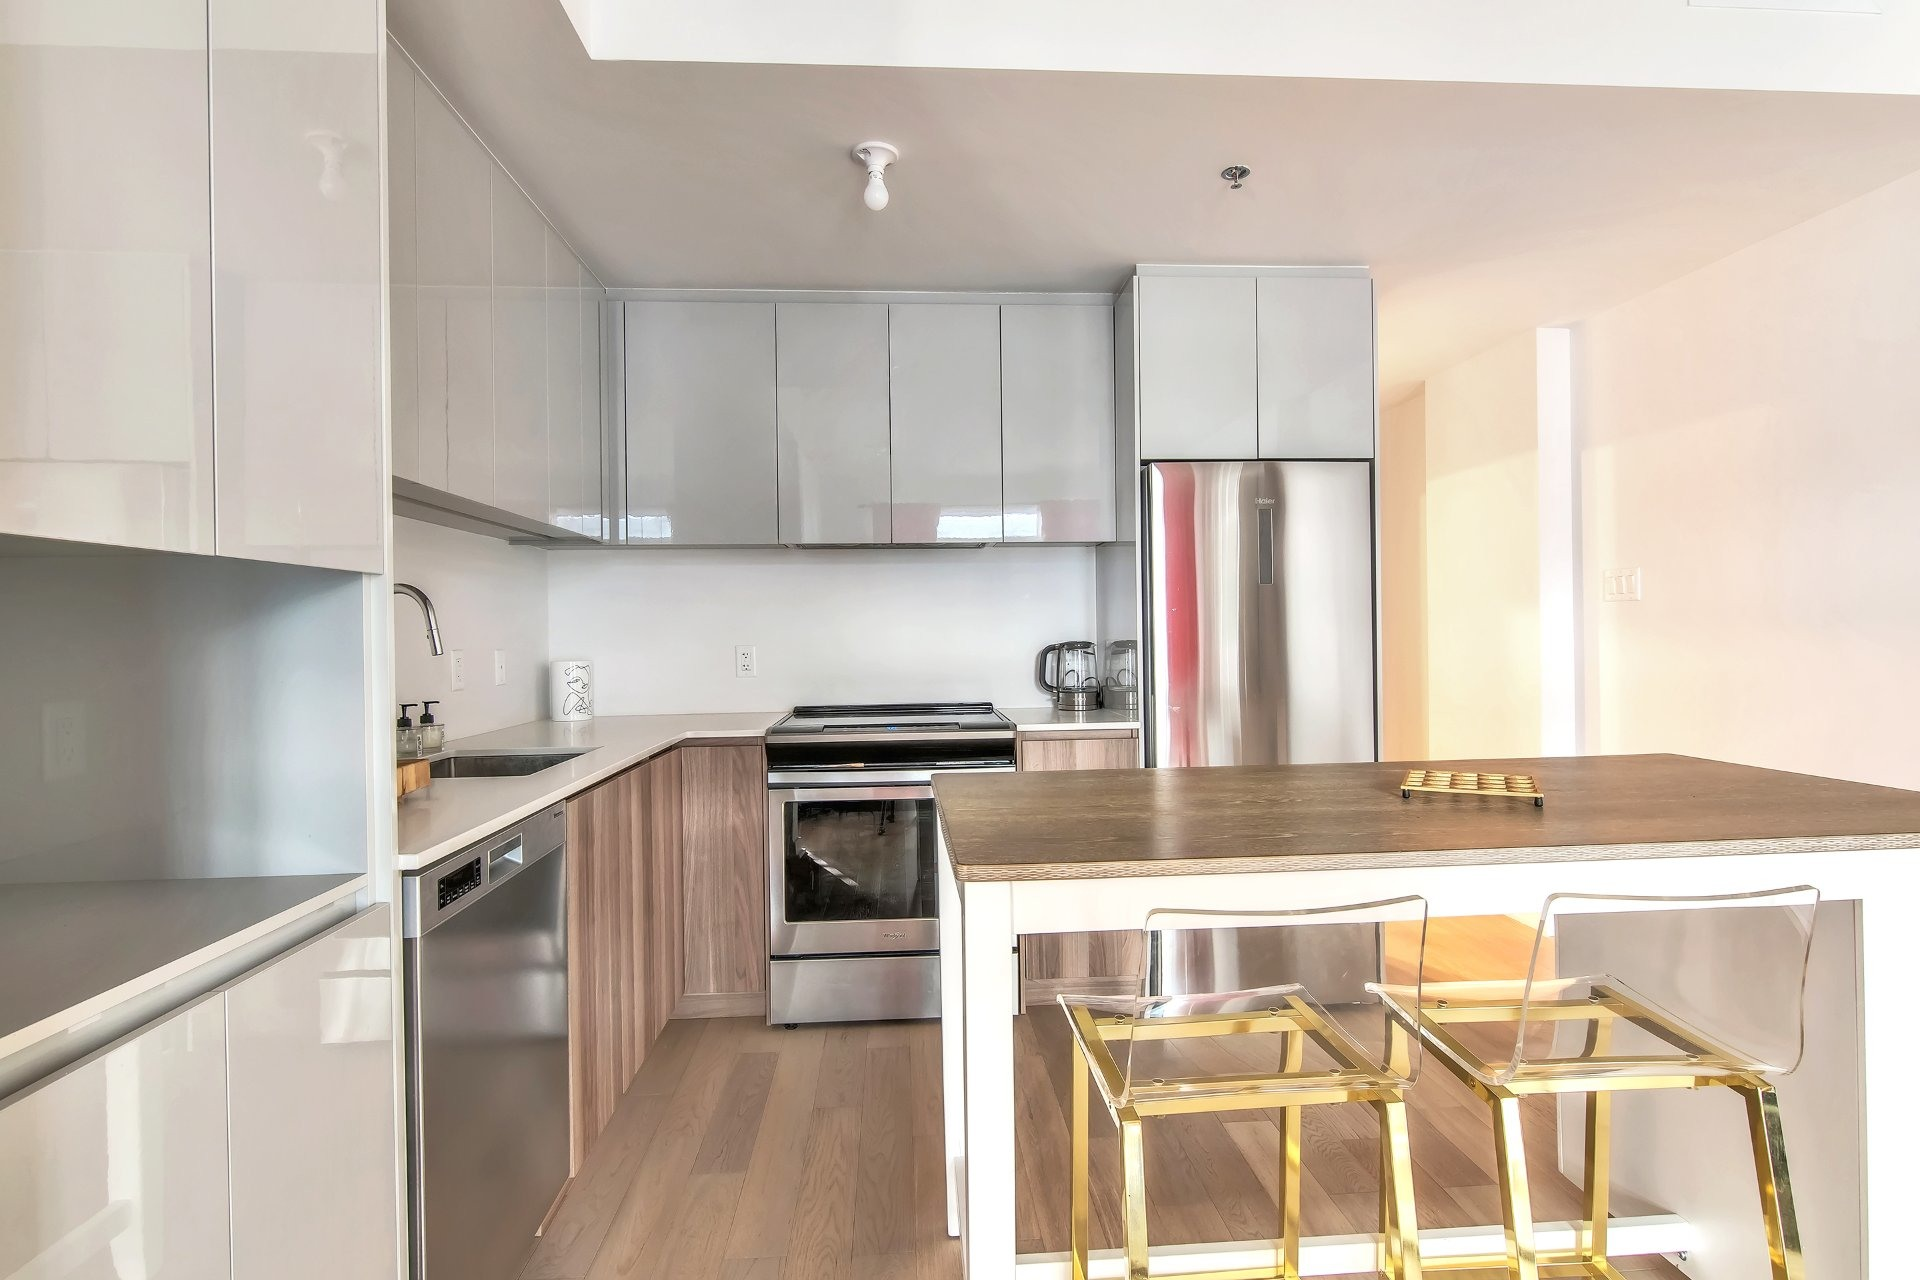 image 10 - Apartment For sale Brossard - 4 rooms